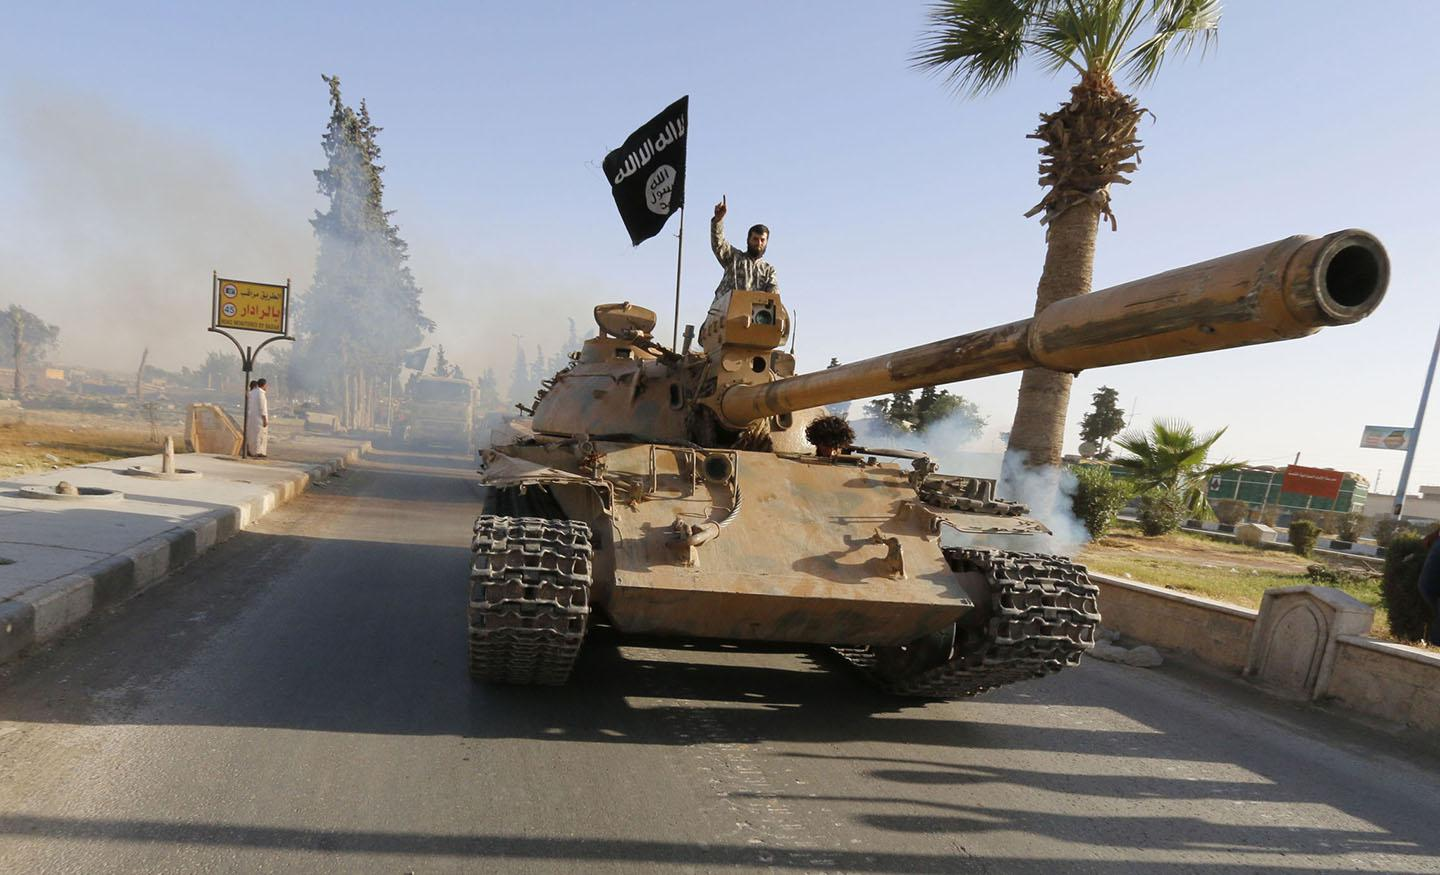 ISIS fighters on a tank take part in a military parade along the streets of northern Raqqa province June 30, 2014.